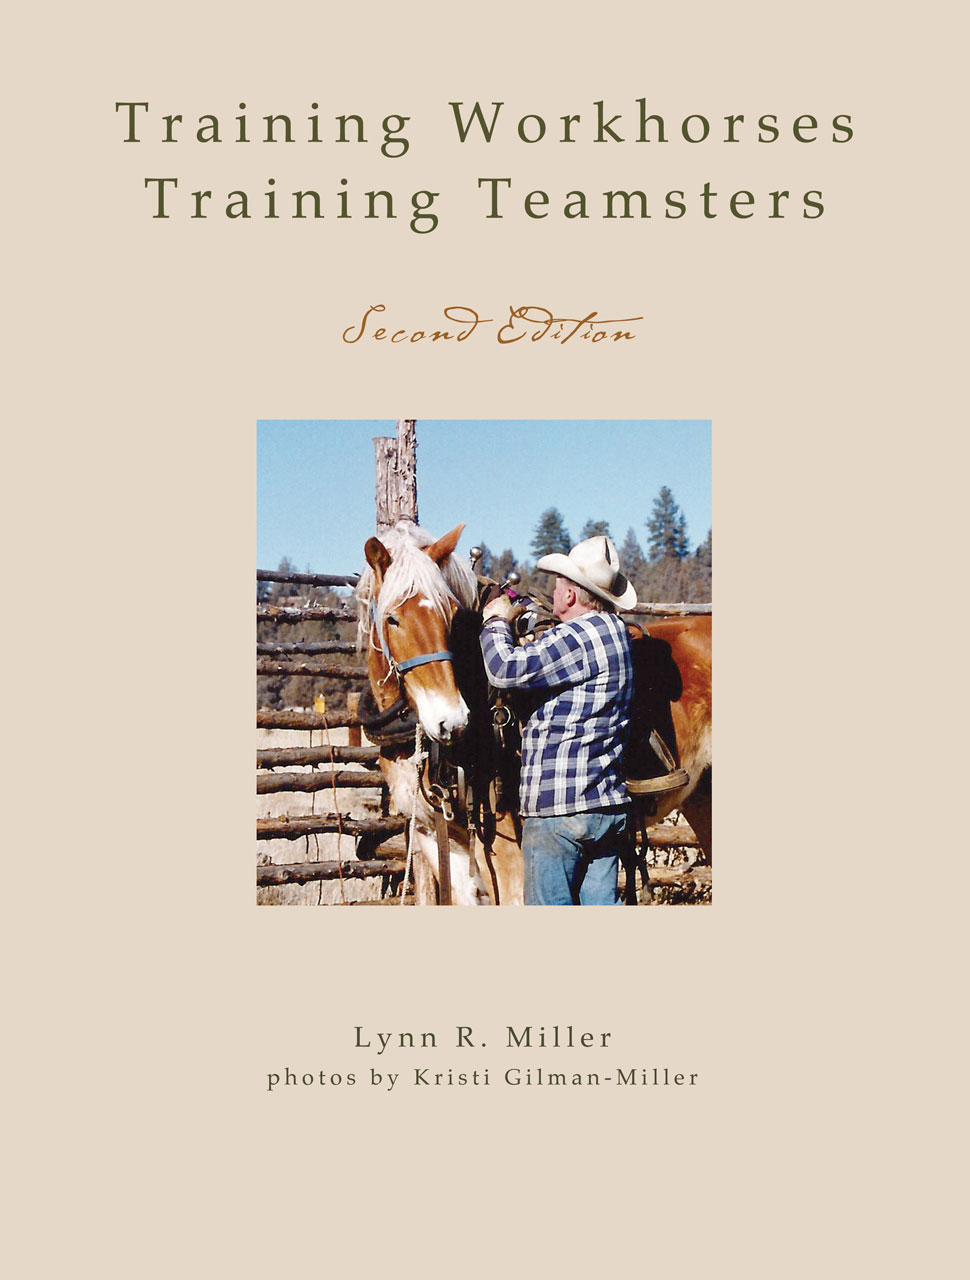 Training Workhorses / Training Teamsters